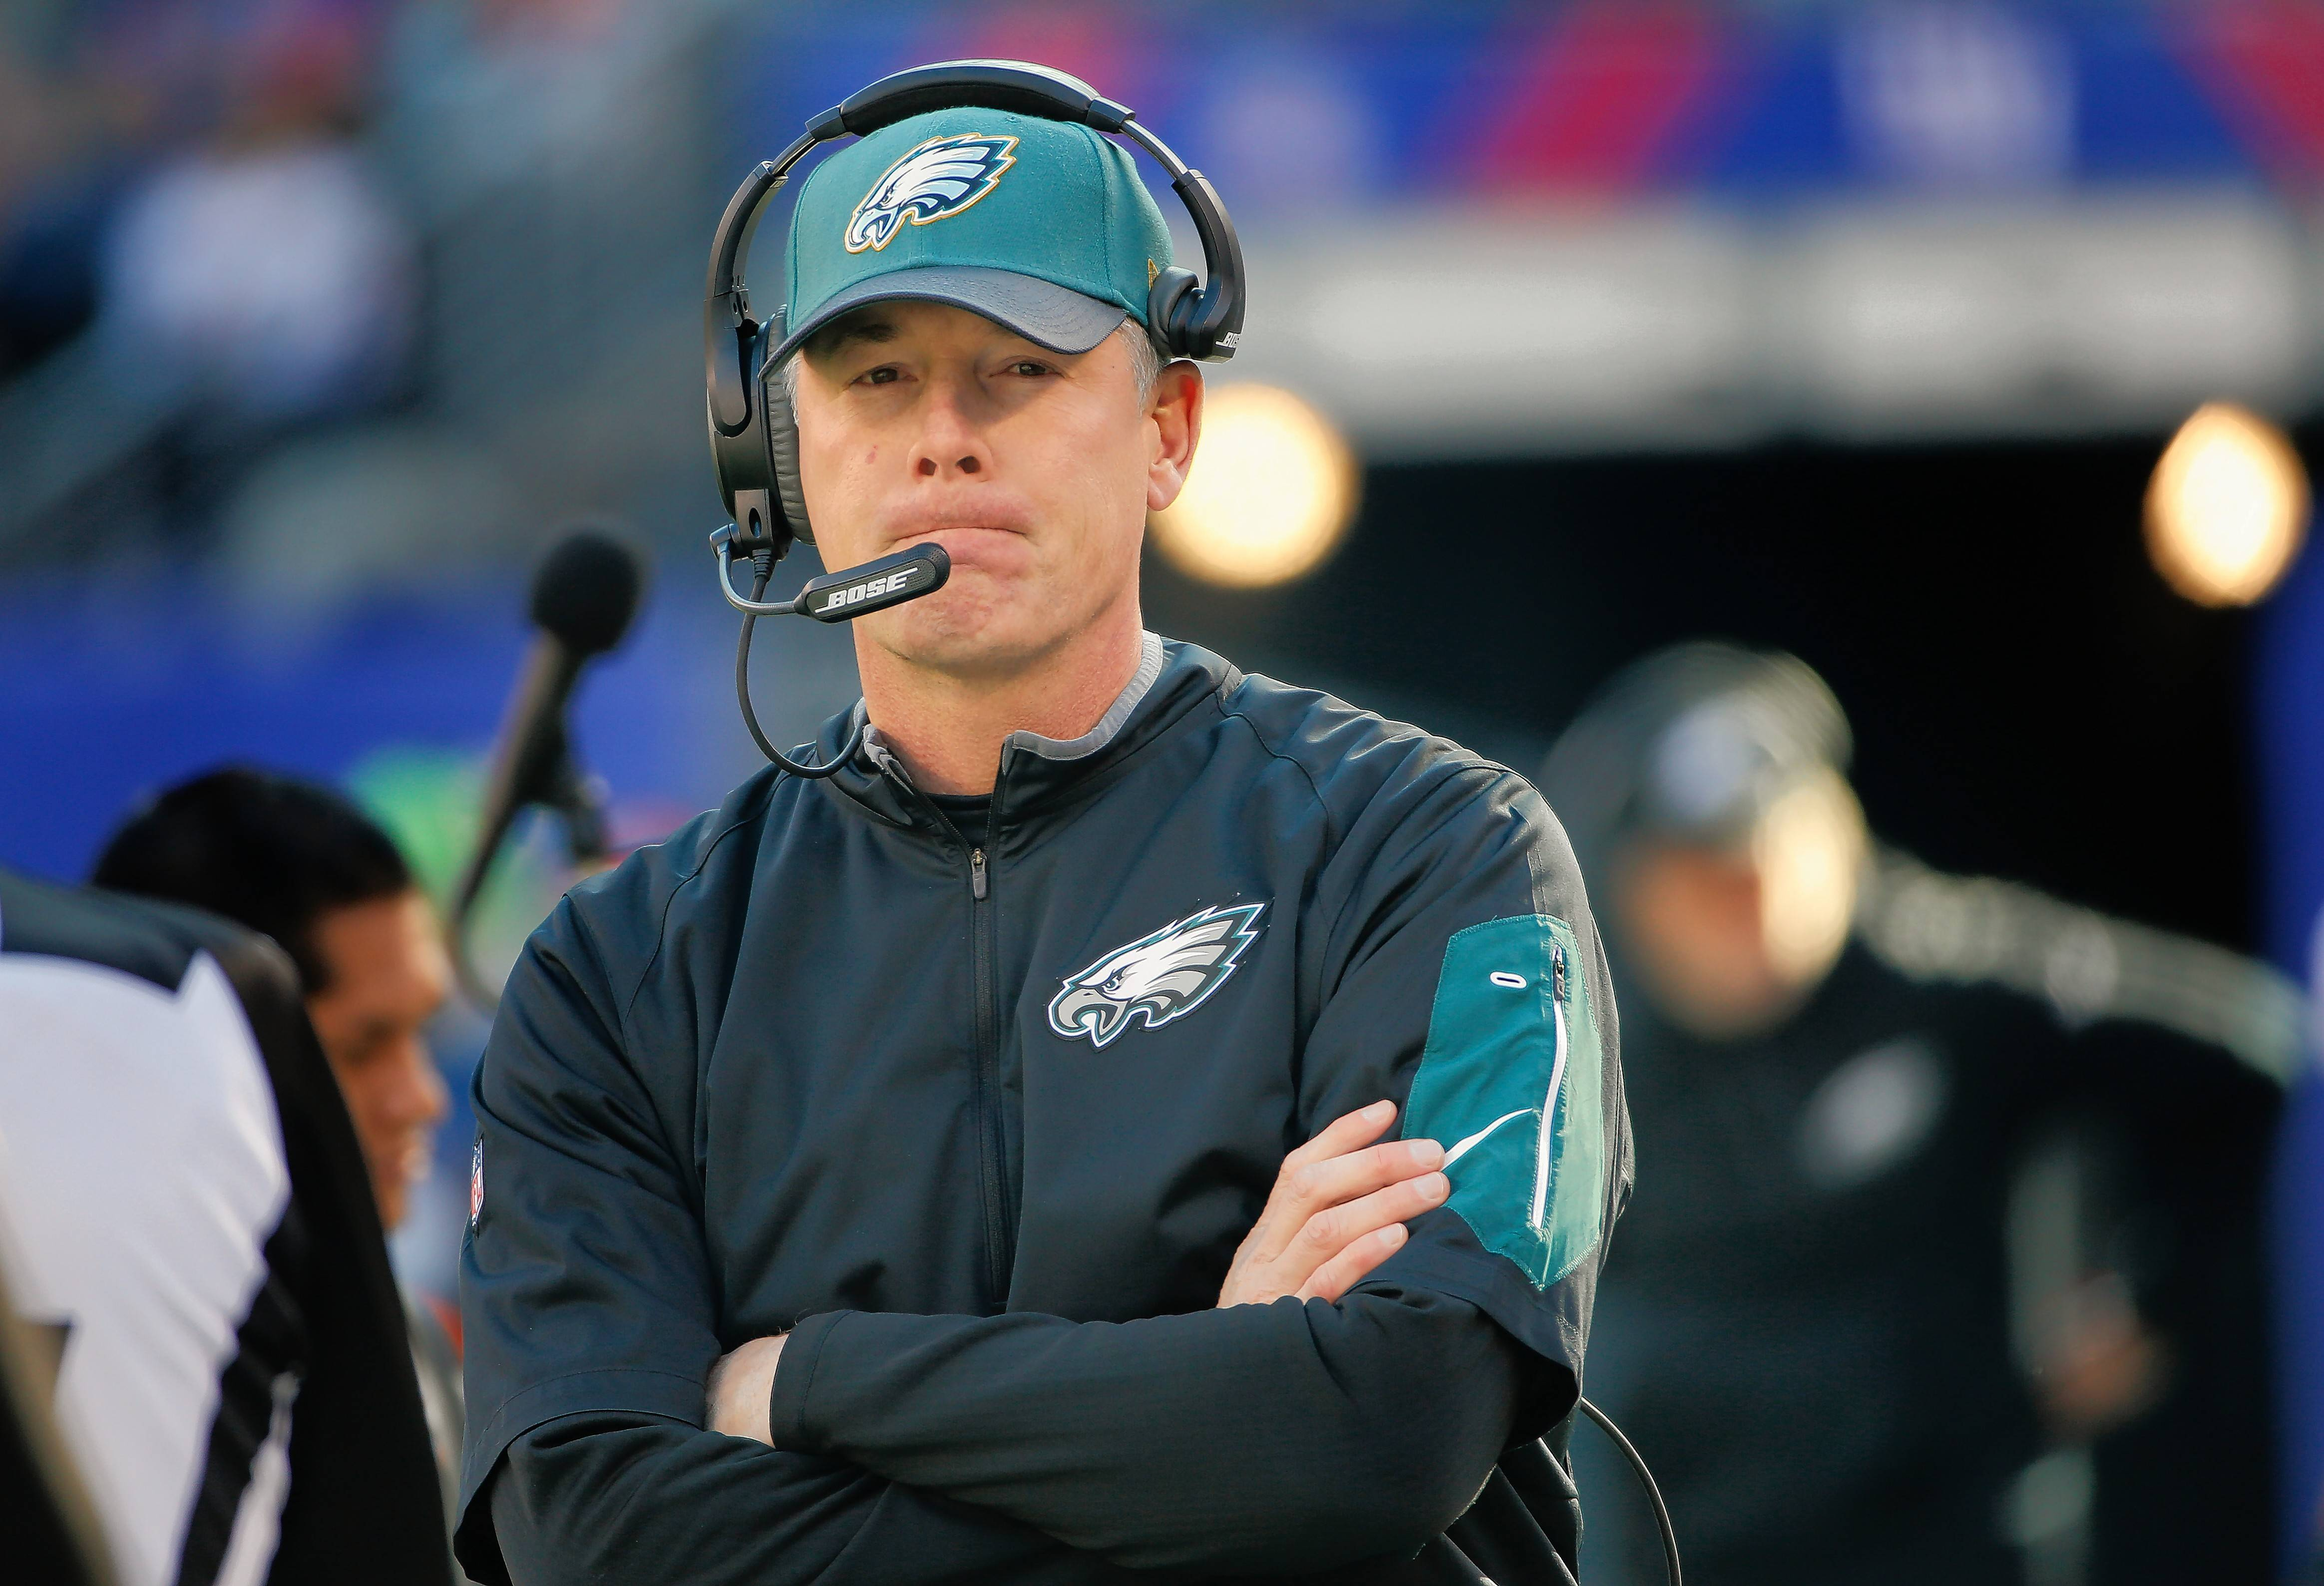 FILE -- In this Jan. 3, 2016, file photo, Philadelphia Eagles interim head coach Pat Shurmur watches play from the sidelines during an NFL football game against the New York Giants, in East Rutherford, N.J. Shurmur is interviewing for the coaching vacancy after leading the team to a season-ending win as interim coach.